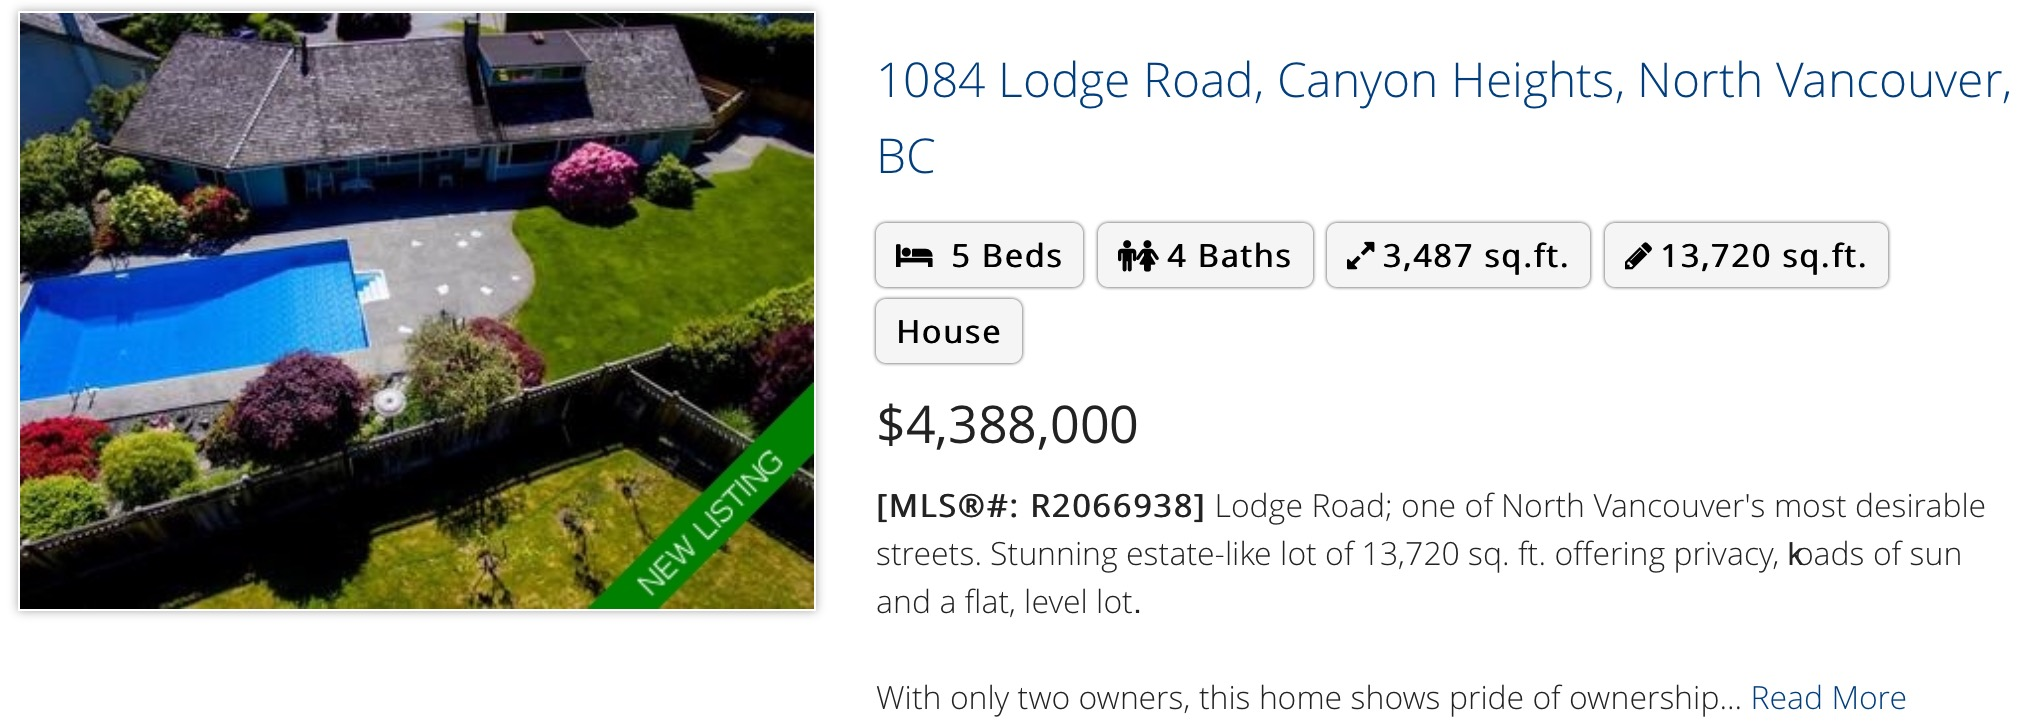 1084 Lodge Road, Canyon Heights, North Vancouver, BC